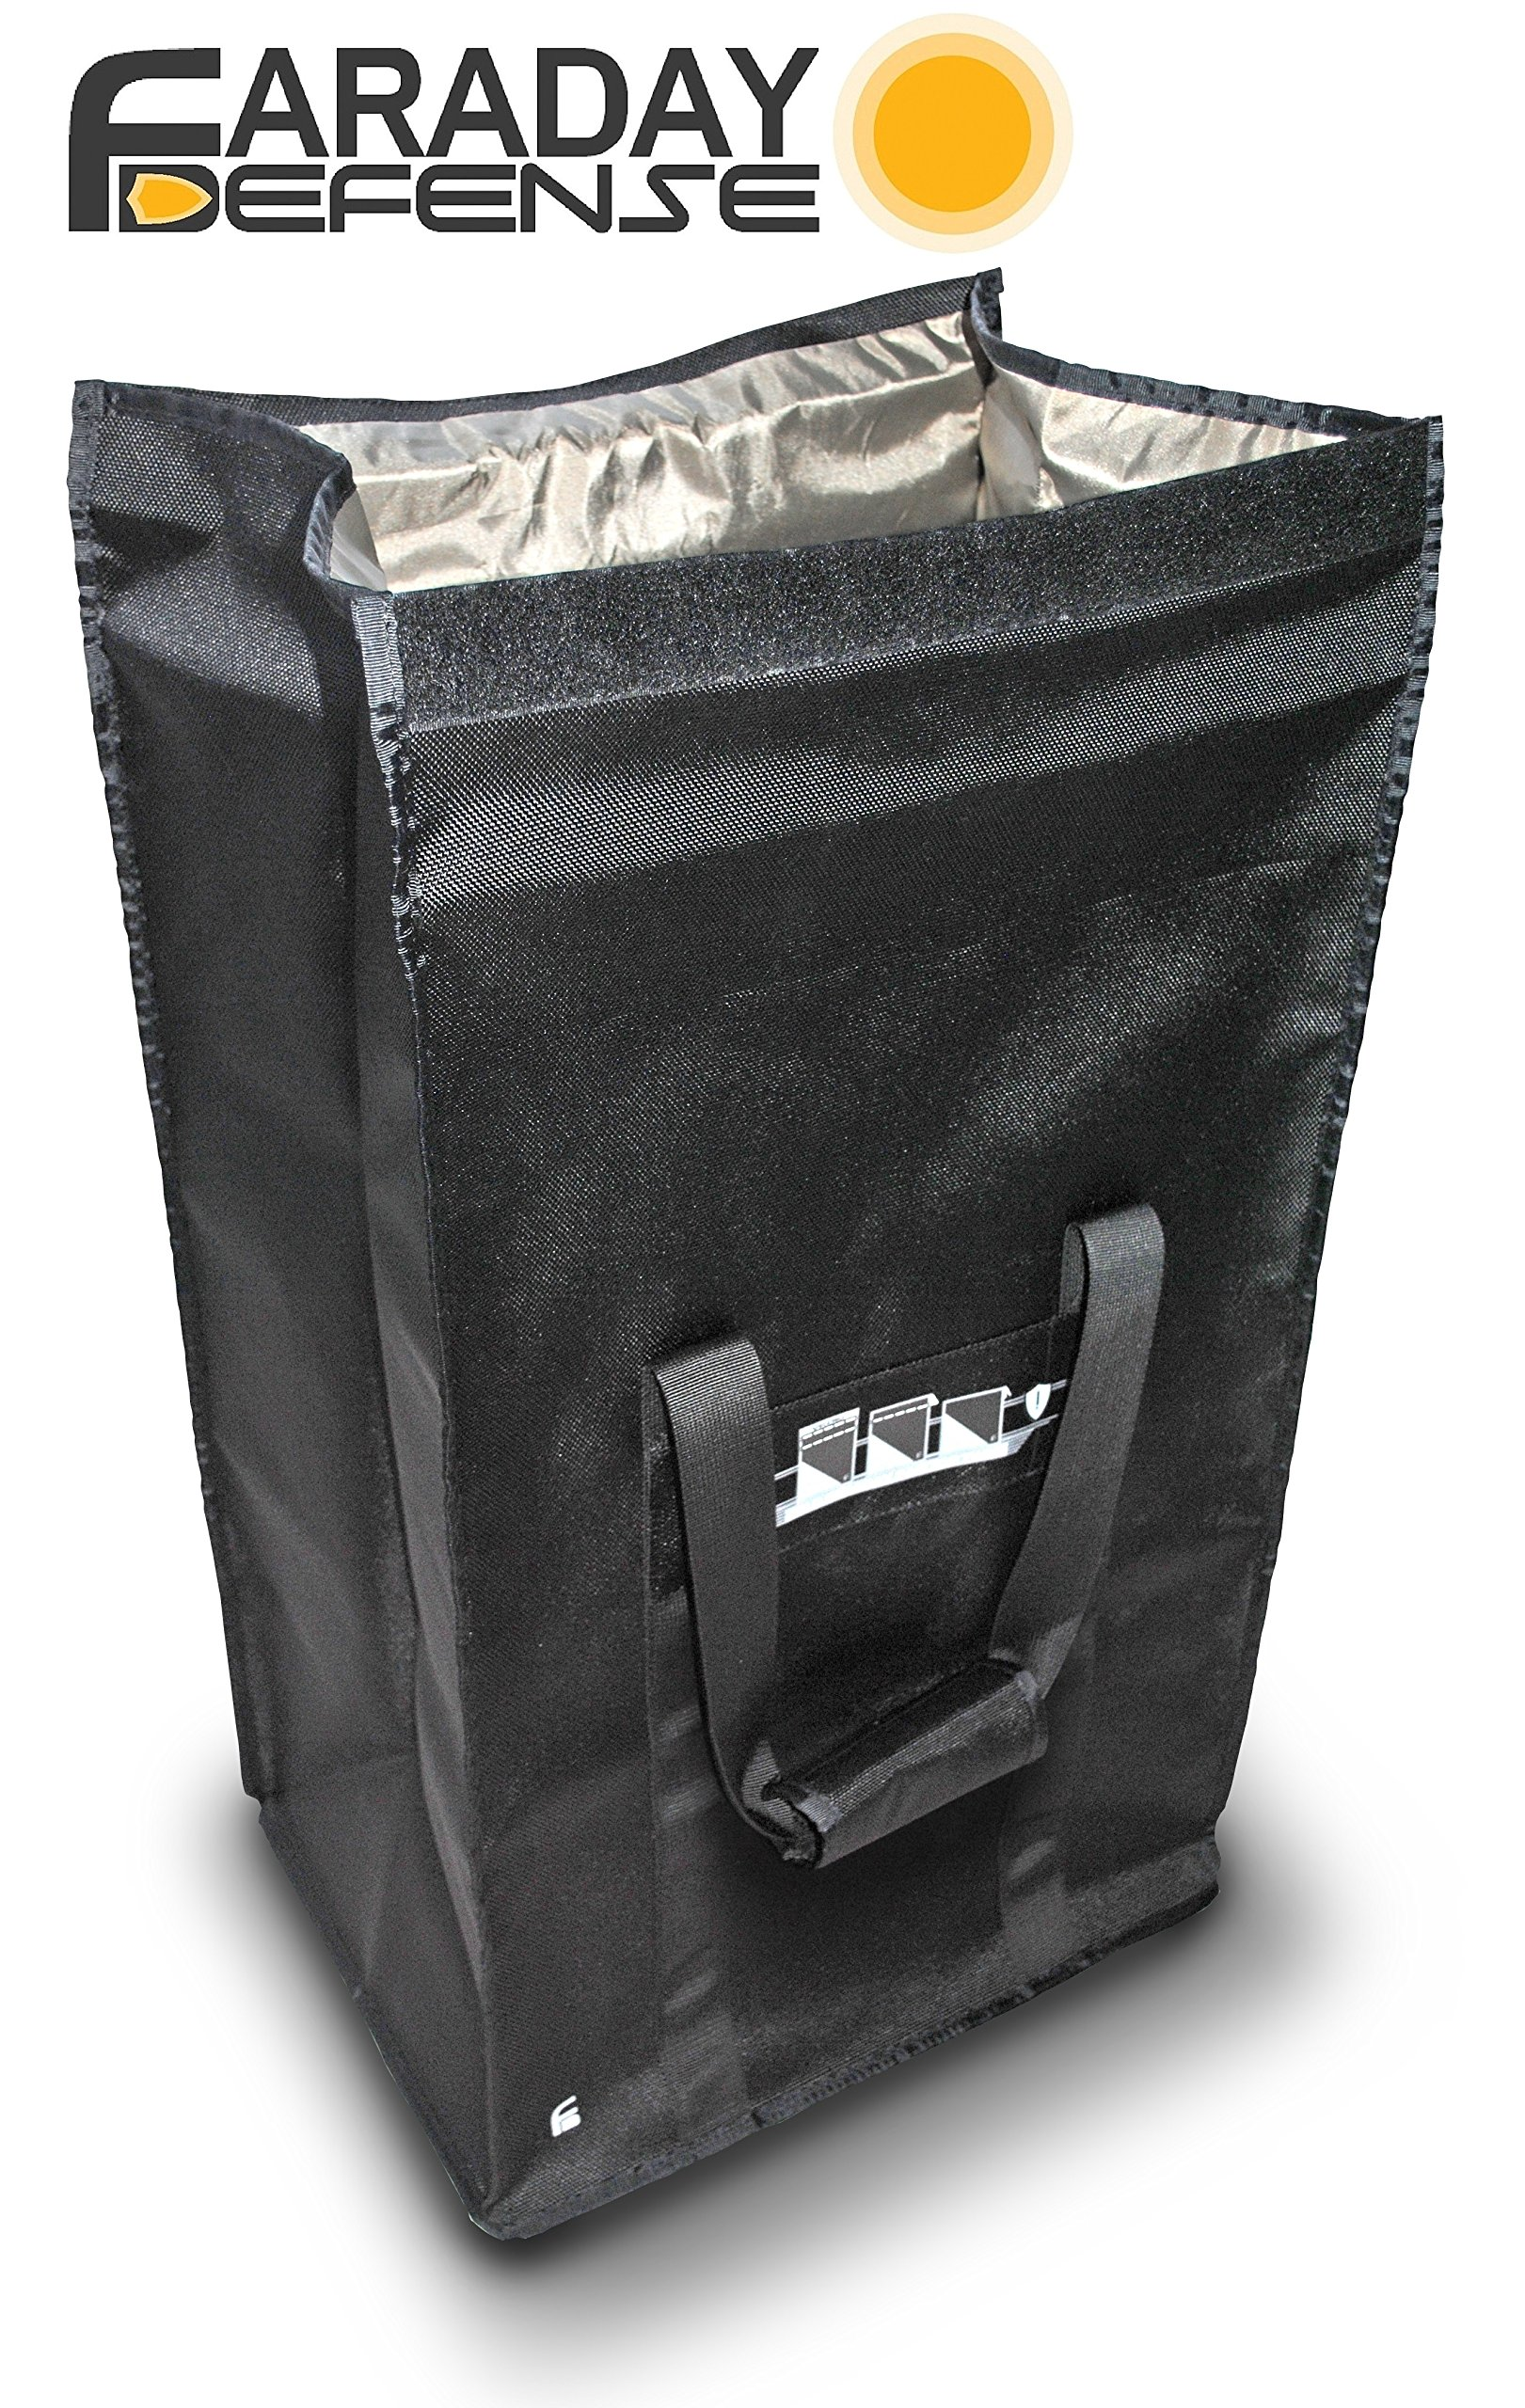 Faraday Defense Computer Tower Bag XL - Heavy Duty Black - Device Shielding for Military, Police, Electronics Suppliers